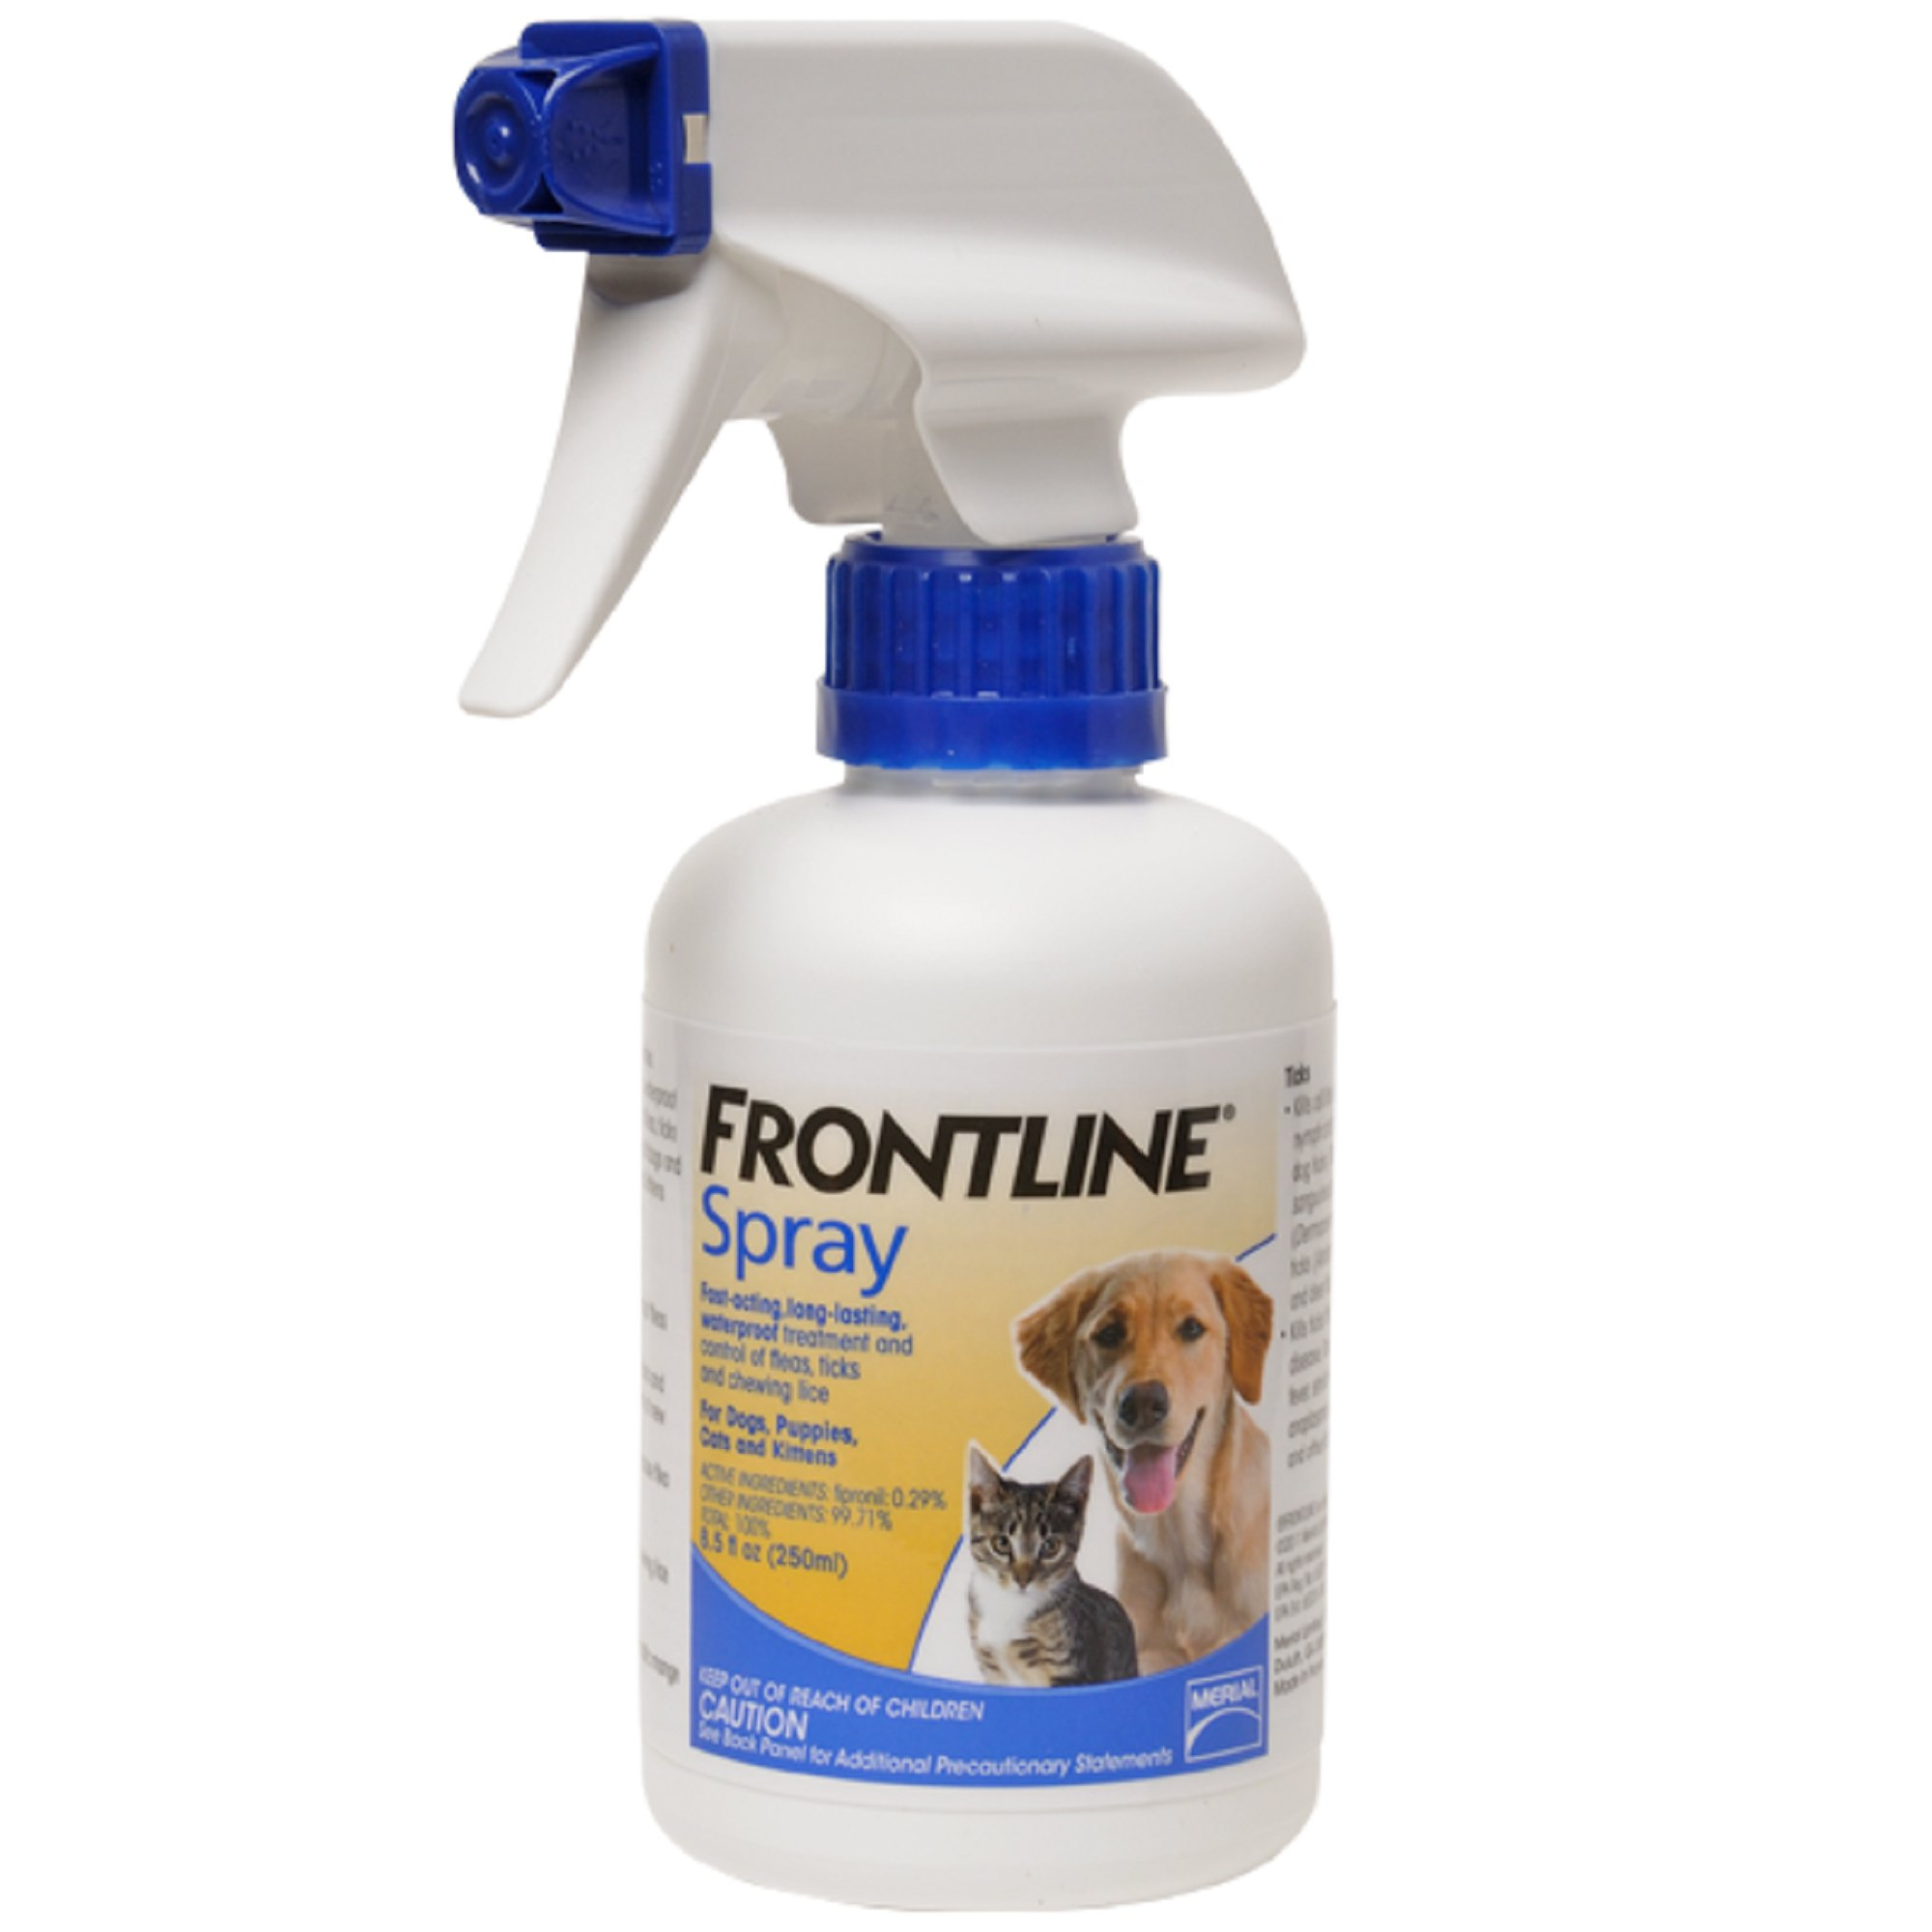 FRONTLINE Spray Treatment for Pets